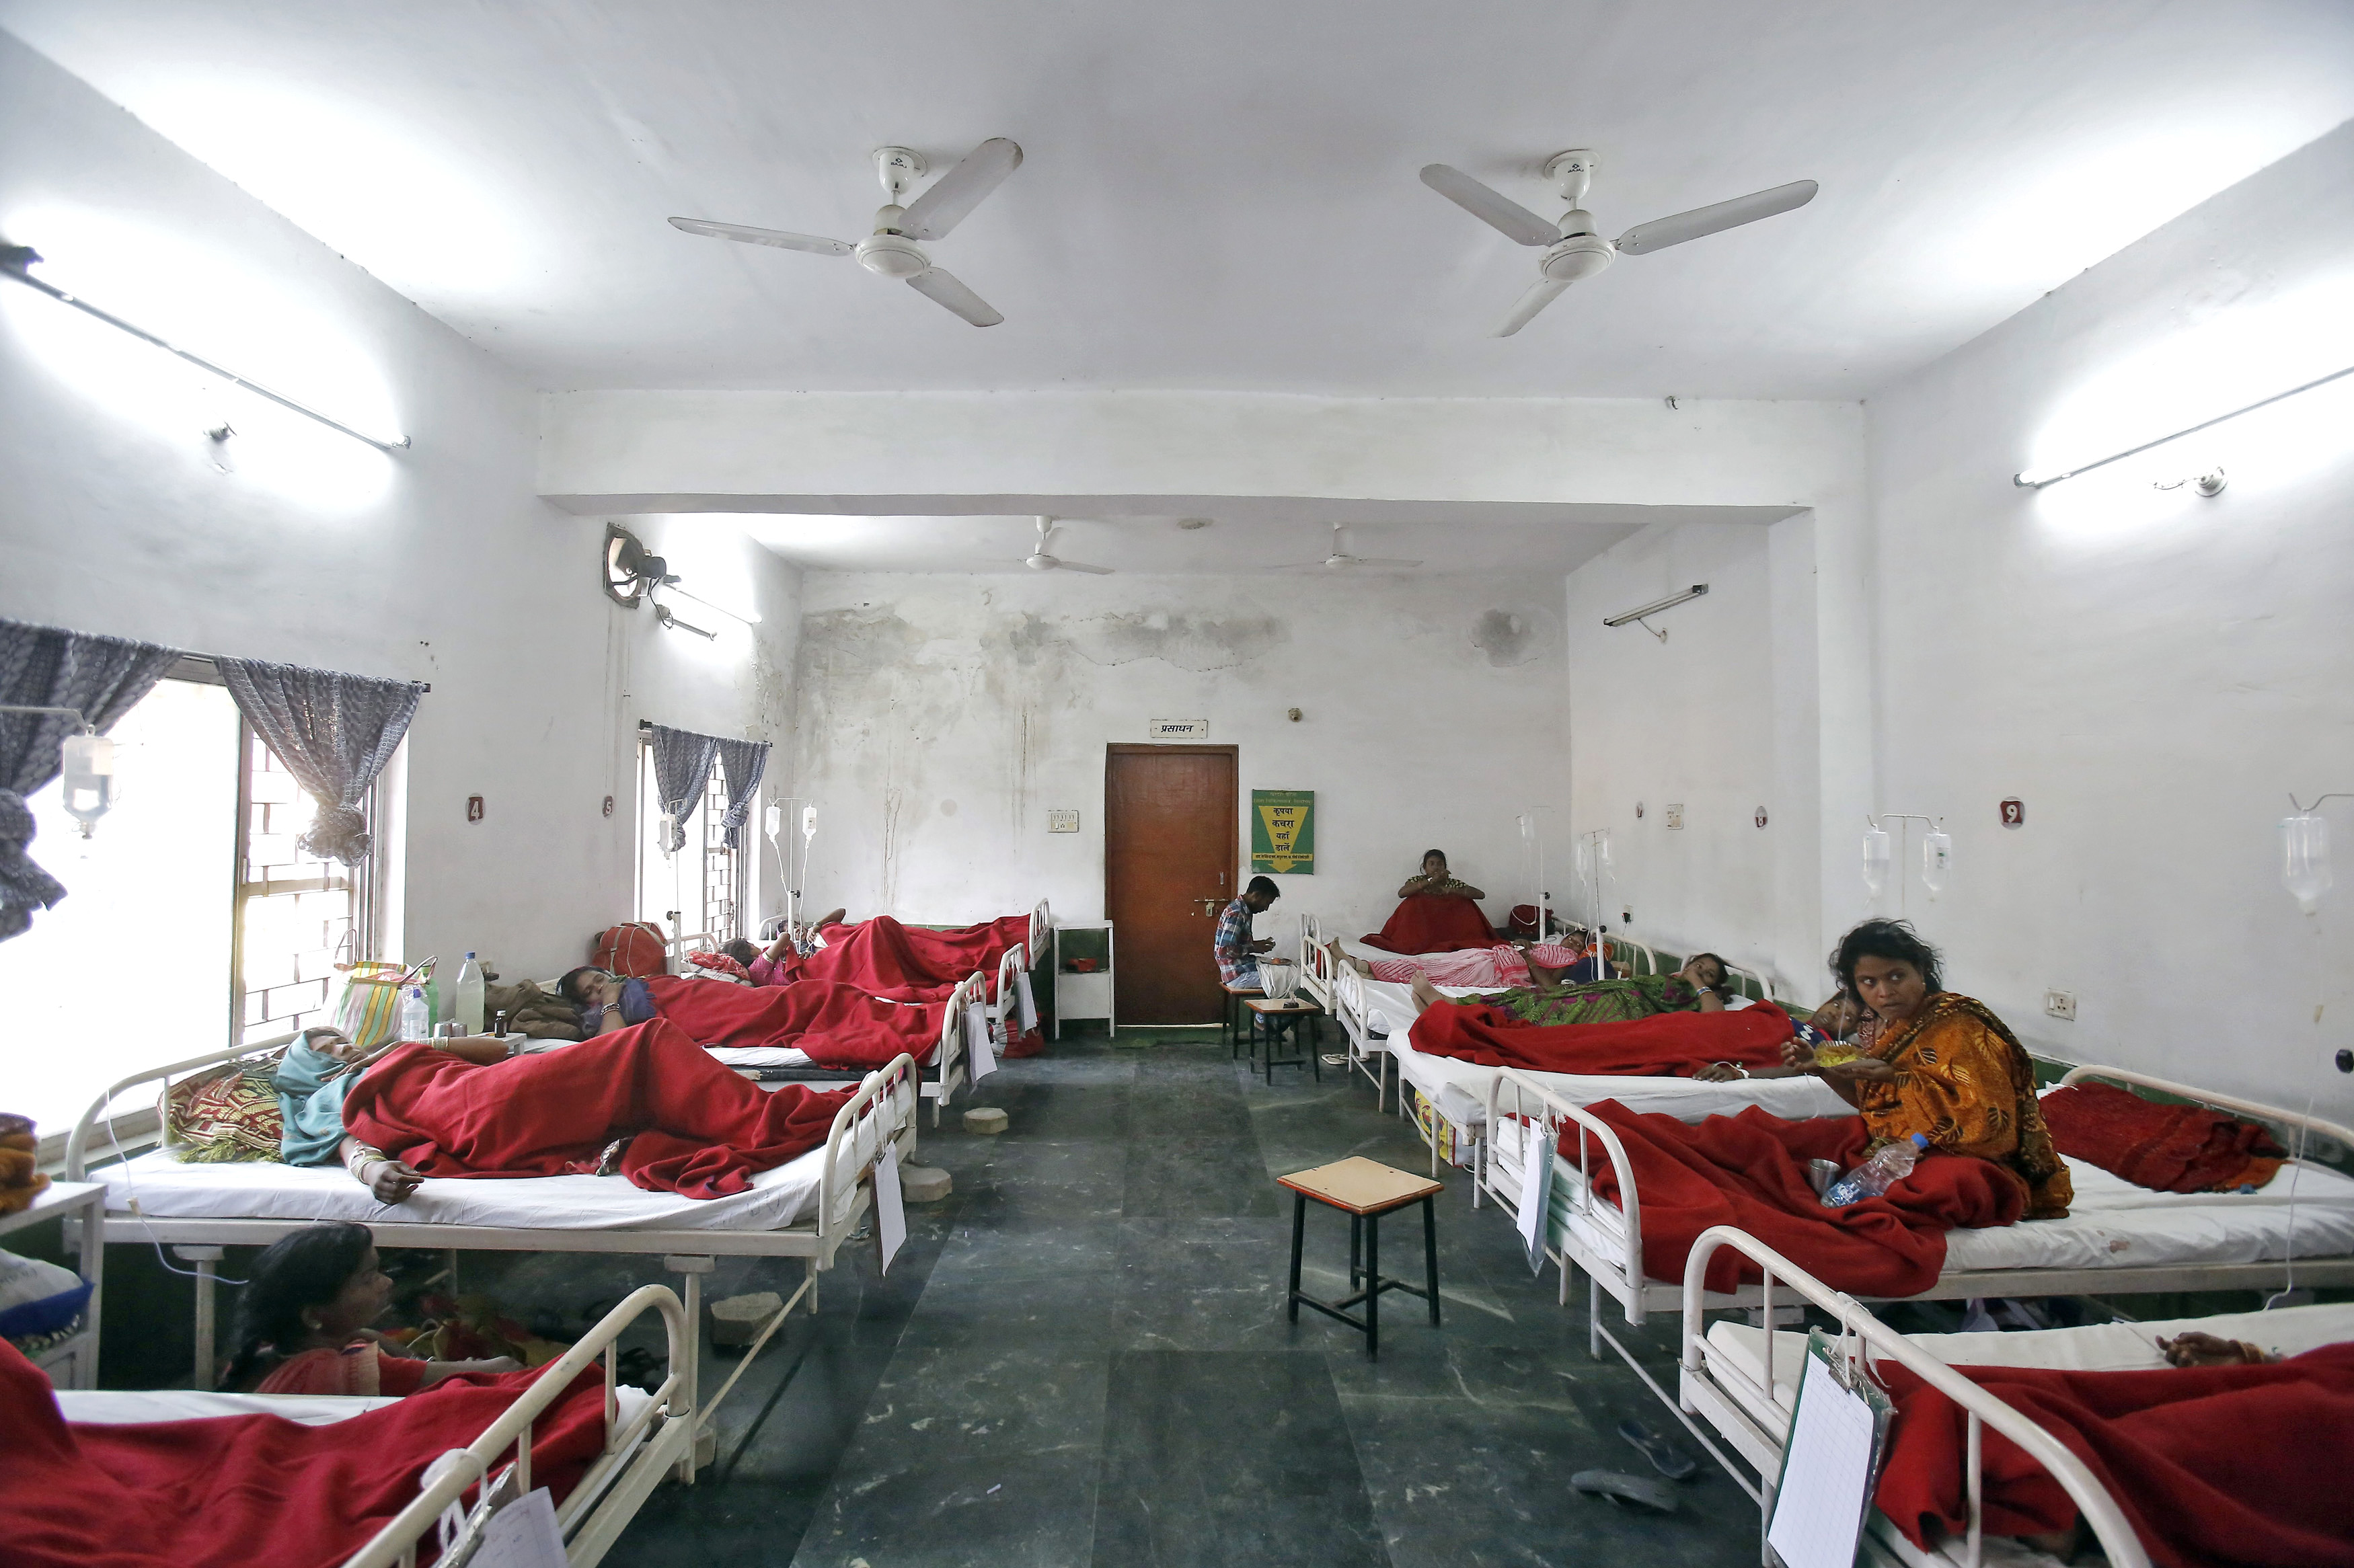 "Women, who underwent a sterilization surgery at a government mass sterilisation ""camp"", lie in hospital beds for treatment at Chhattisgarh Institute of Medical Sciences (CIMS) hospital in Bilaspur, in the eastern Indian state of Chhattisgarh, November 13, 2014. The doctor whose sterilisation of 83 women in less than three hours ended in at least a dozen deaths said on Thursday the express operations were his moral responsibility and blamed adulterated medicines for the tragedy. Dr R. K Gupta, who says he has conducted more than 50,000 such operations, denied that his equipment was rusty or dirty and said it was the government's duty to control the number of people that turned up at his family-planning ""camp"". REUTERS/Anindito Mukherjee (INDIA - Tags: HEALTH CRIME LAW SOCIETY) - RTR4DYN3"